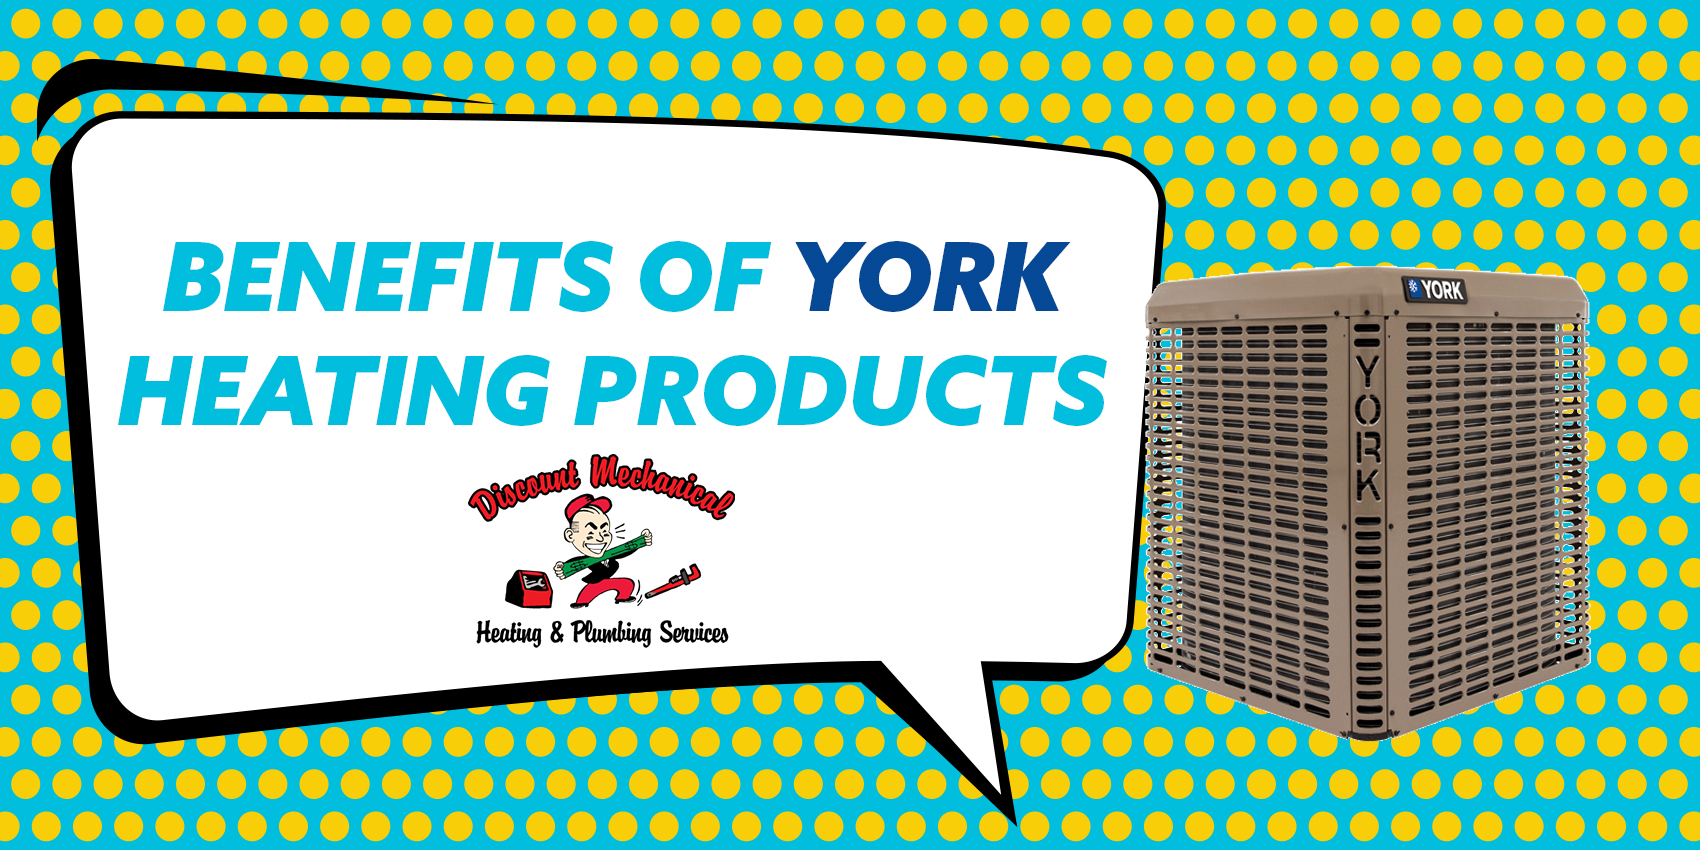 Benefits of YORK Heating Products